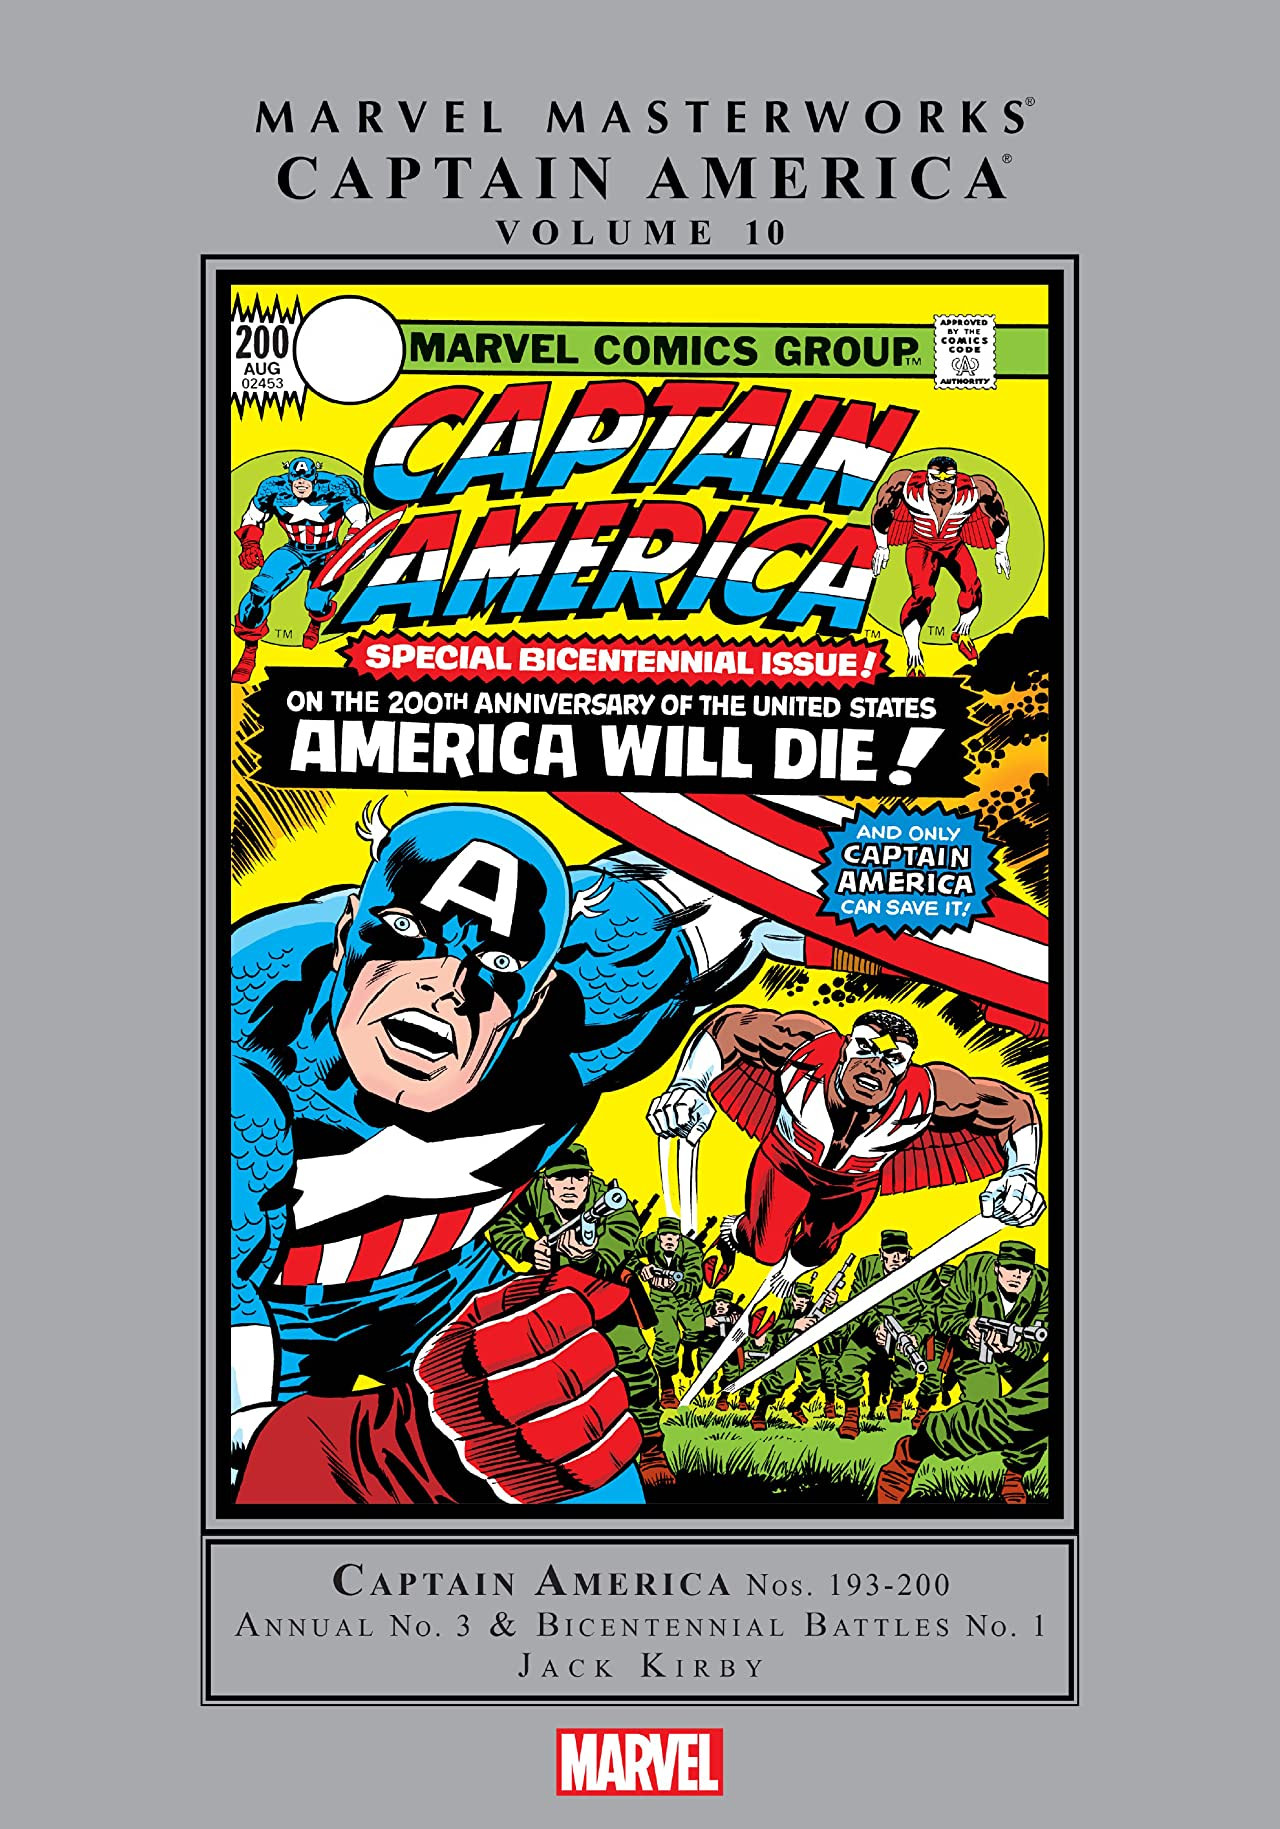 Marvel Masterworks: Captain America Vol 1 10